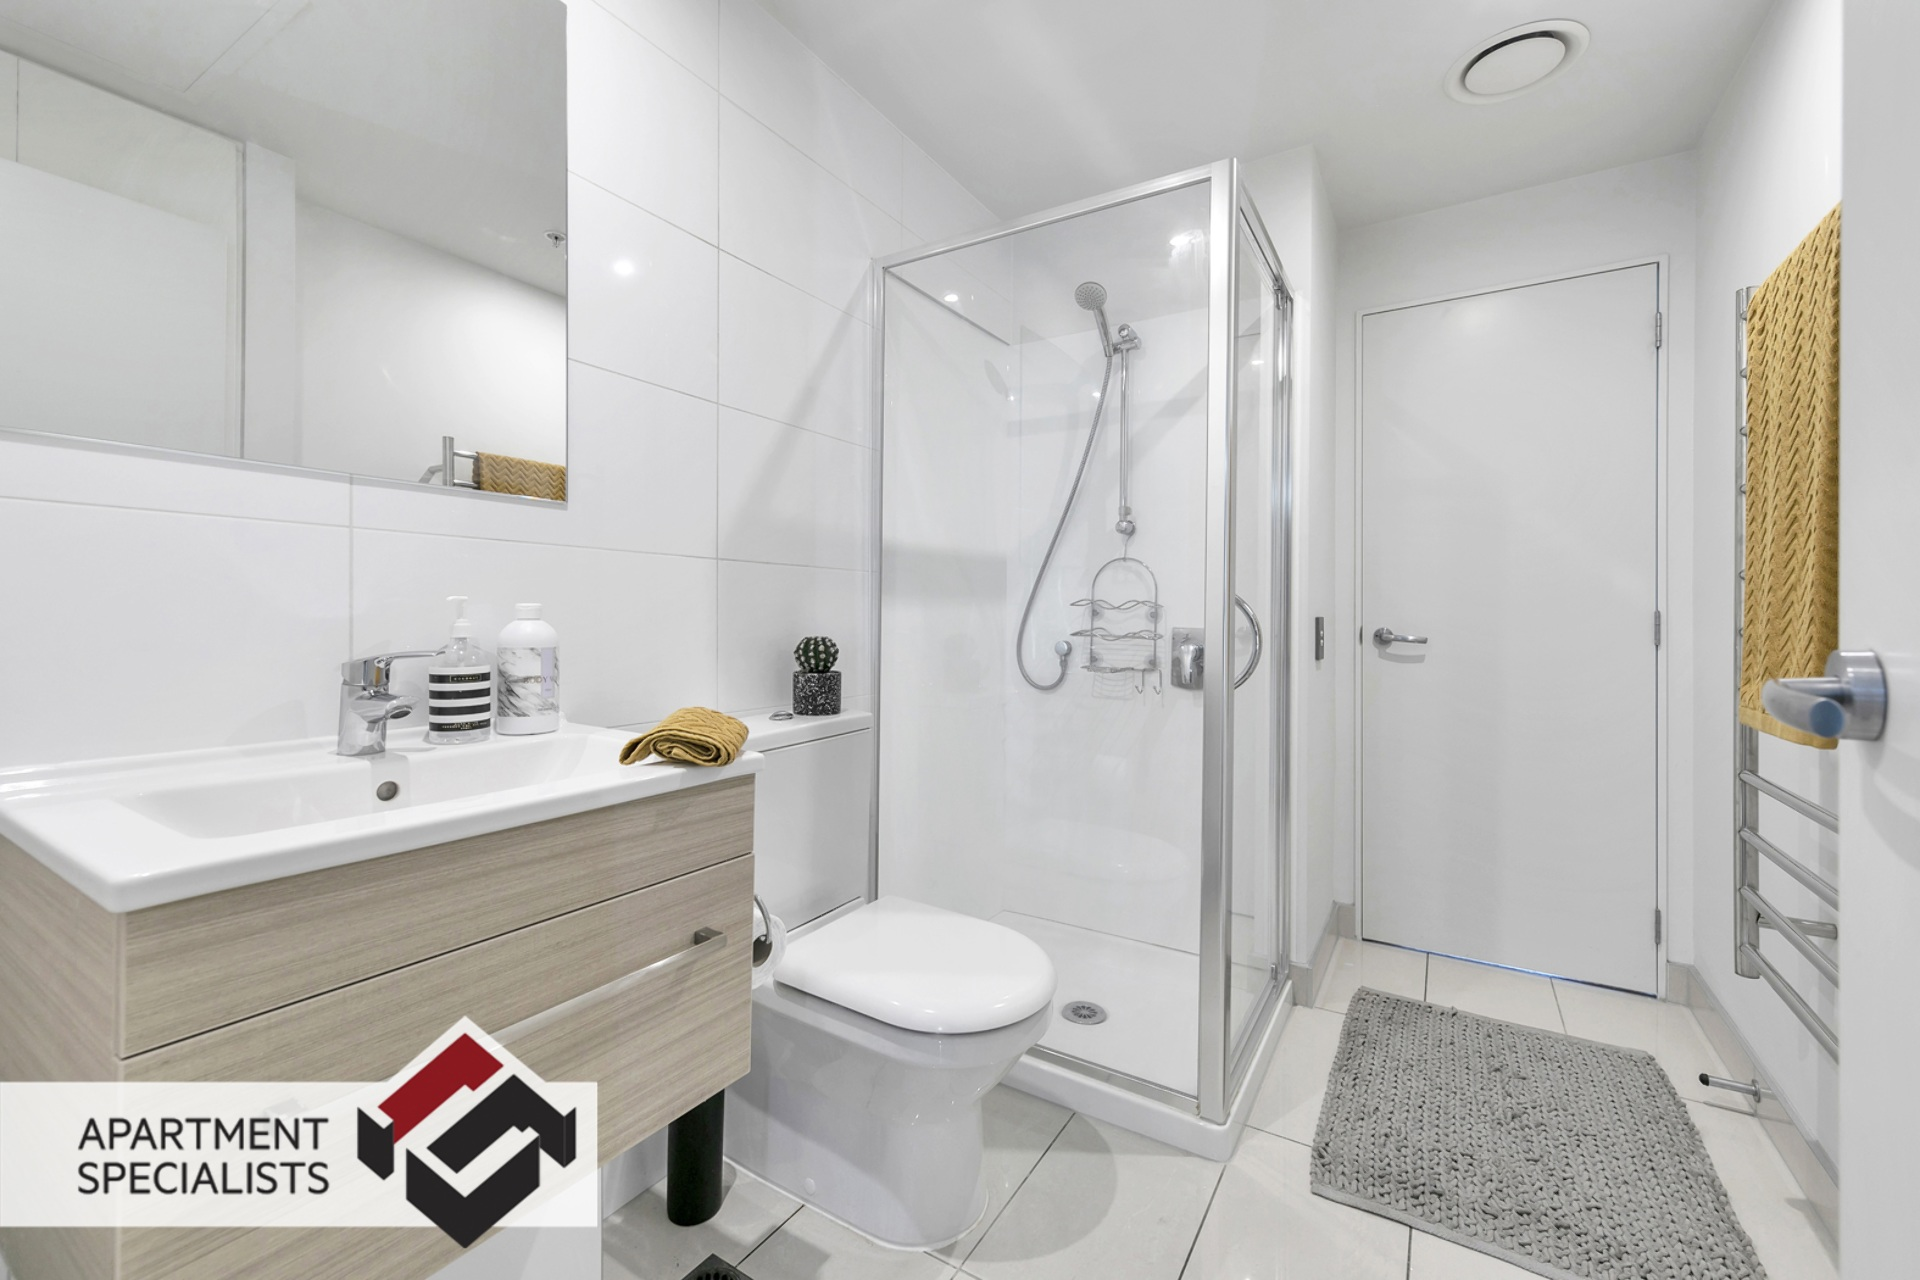 6 | 5 Howe Street, Freemans Bay | Apartment Specialists